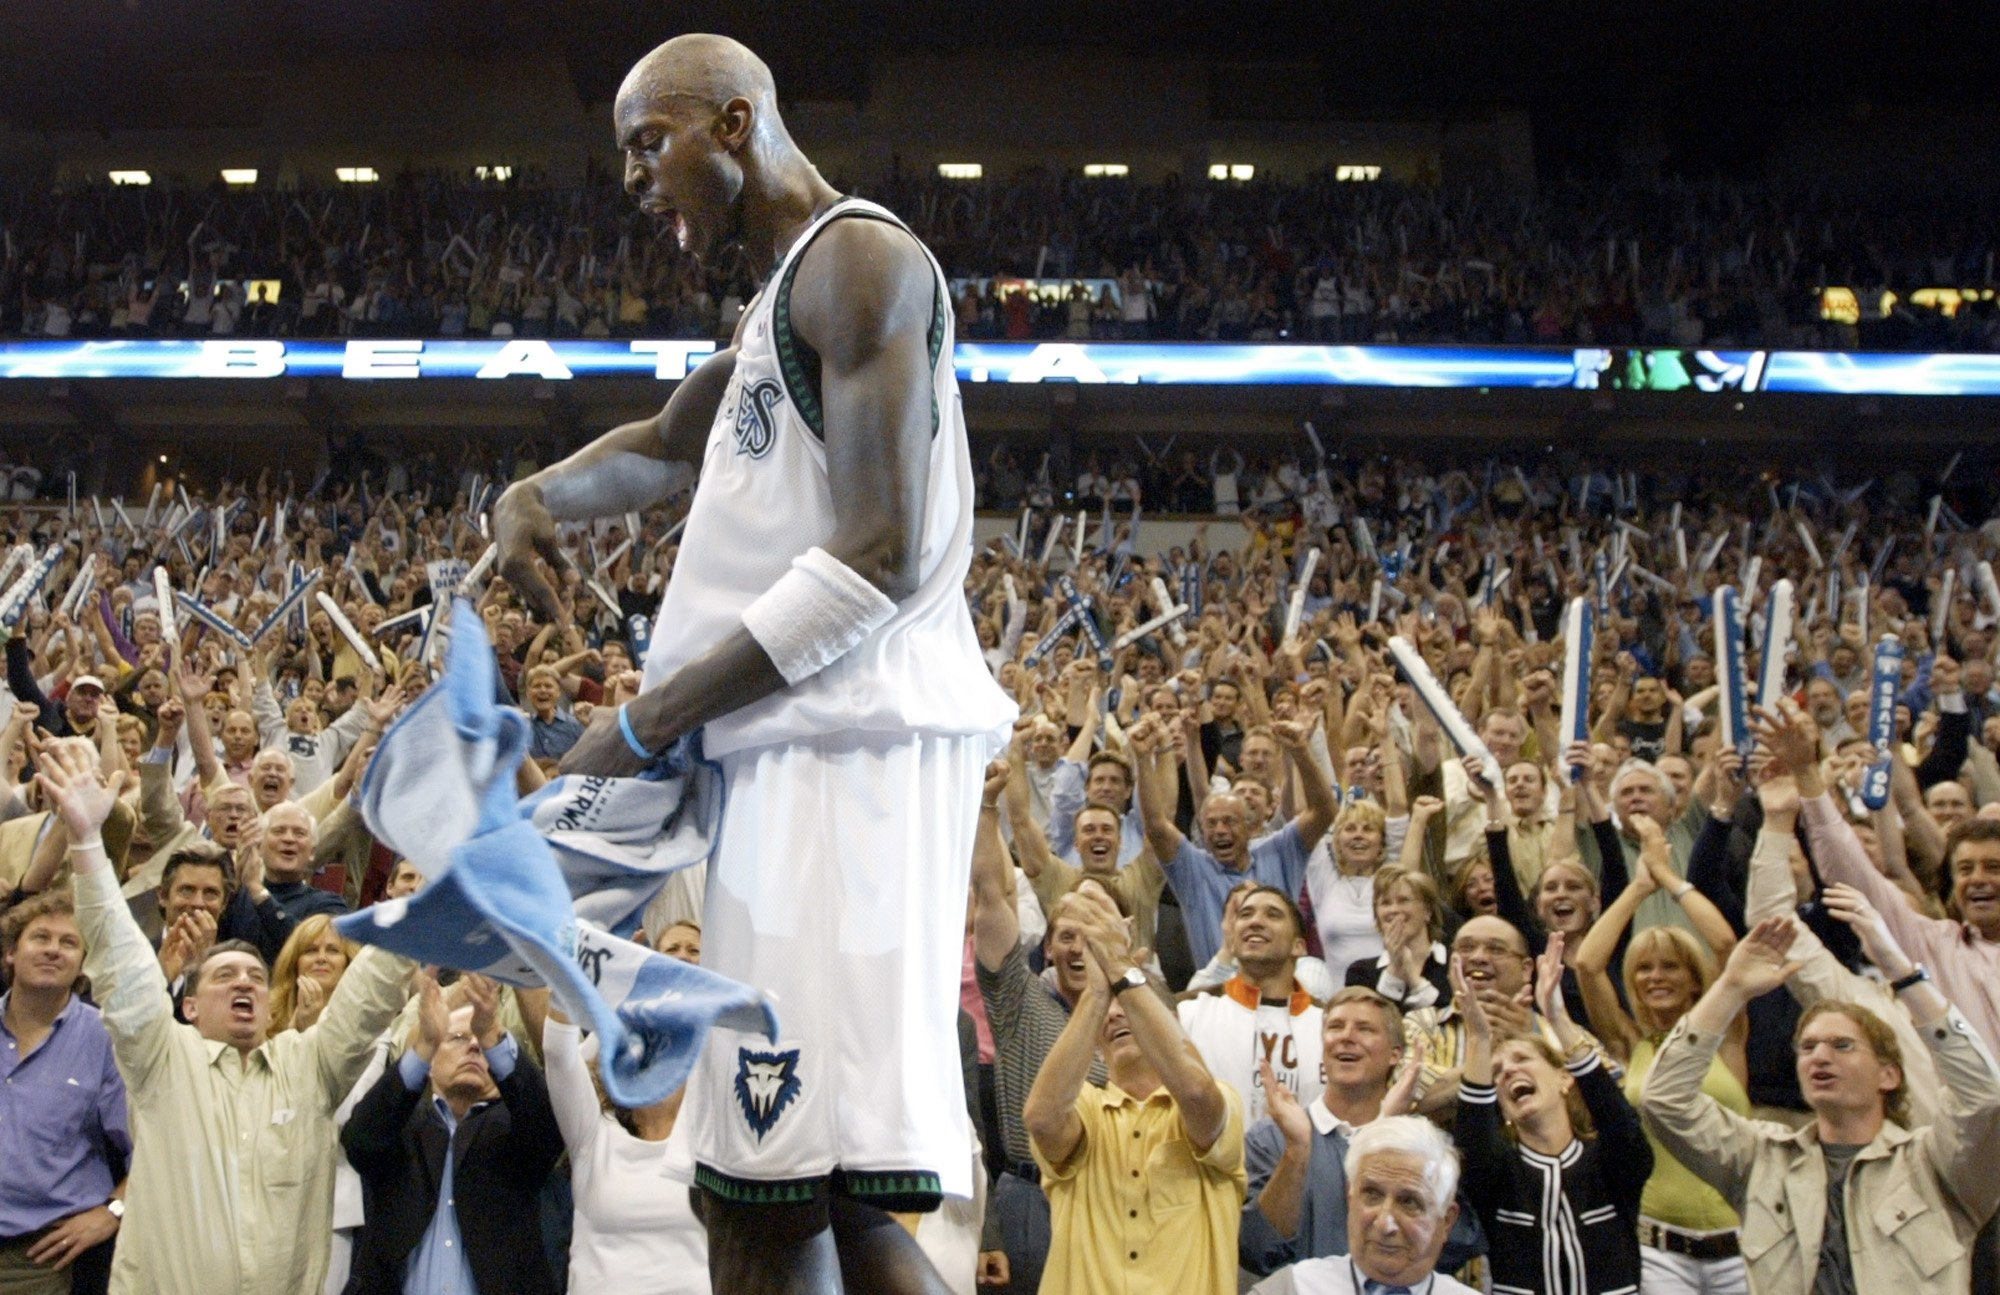 kg-twolves-crowd-hype